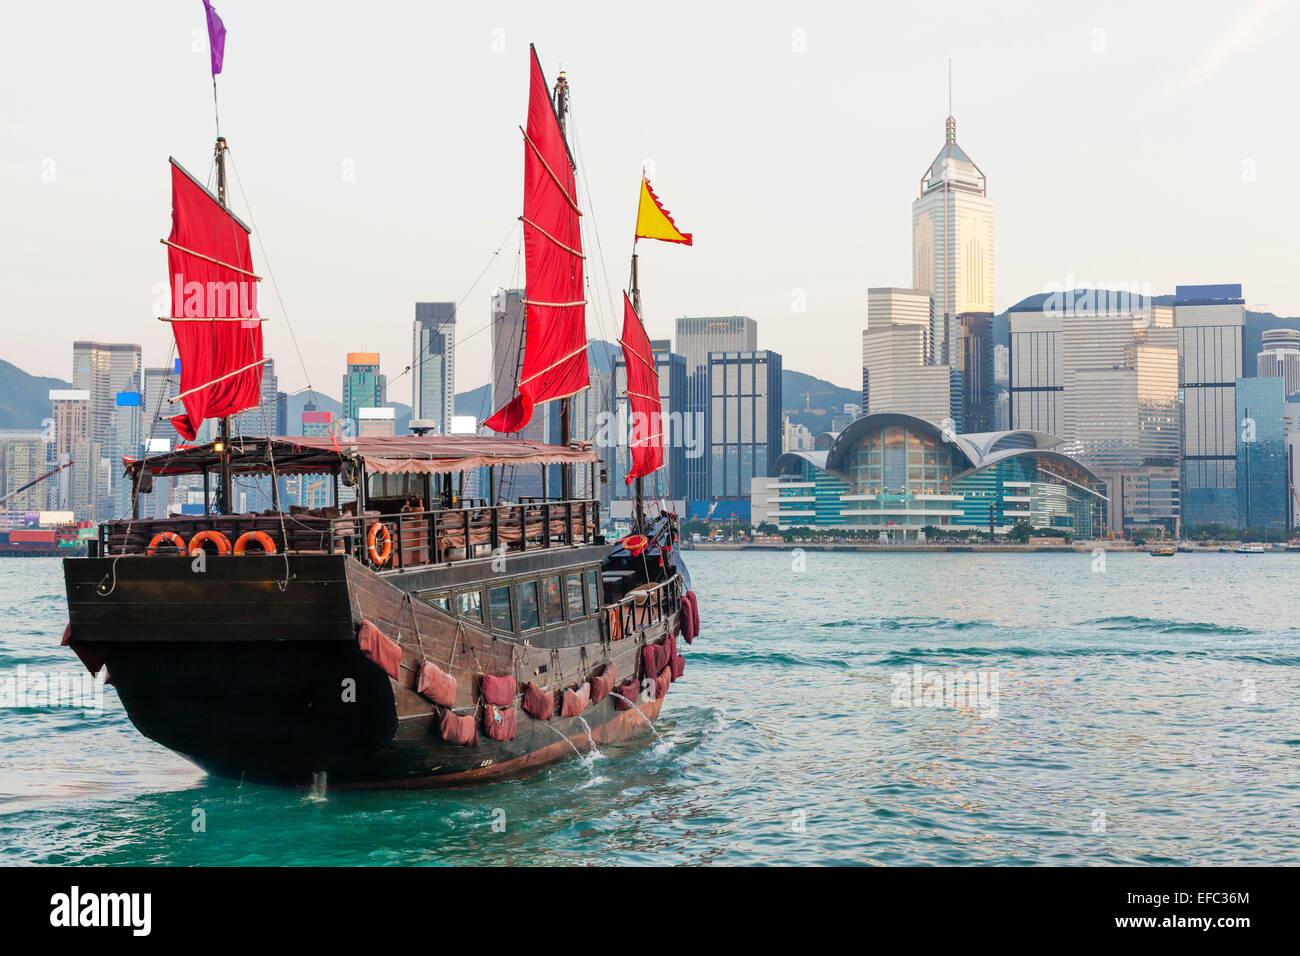 L'horizon de Hong Kong et junk boat Photo Stock